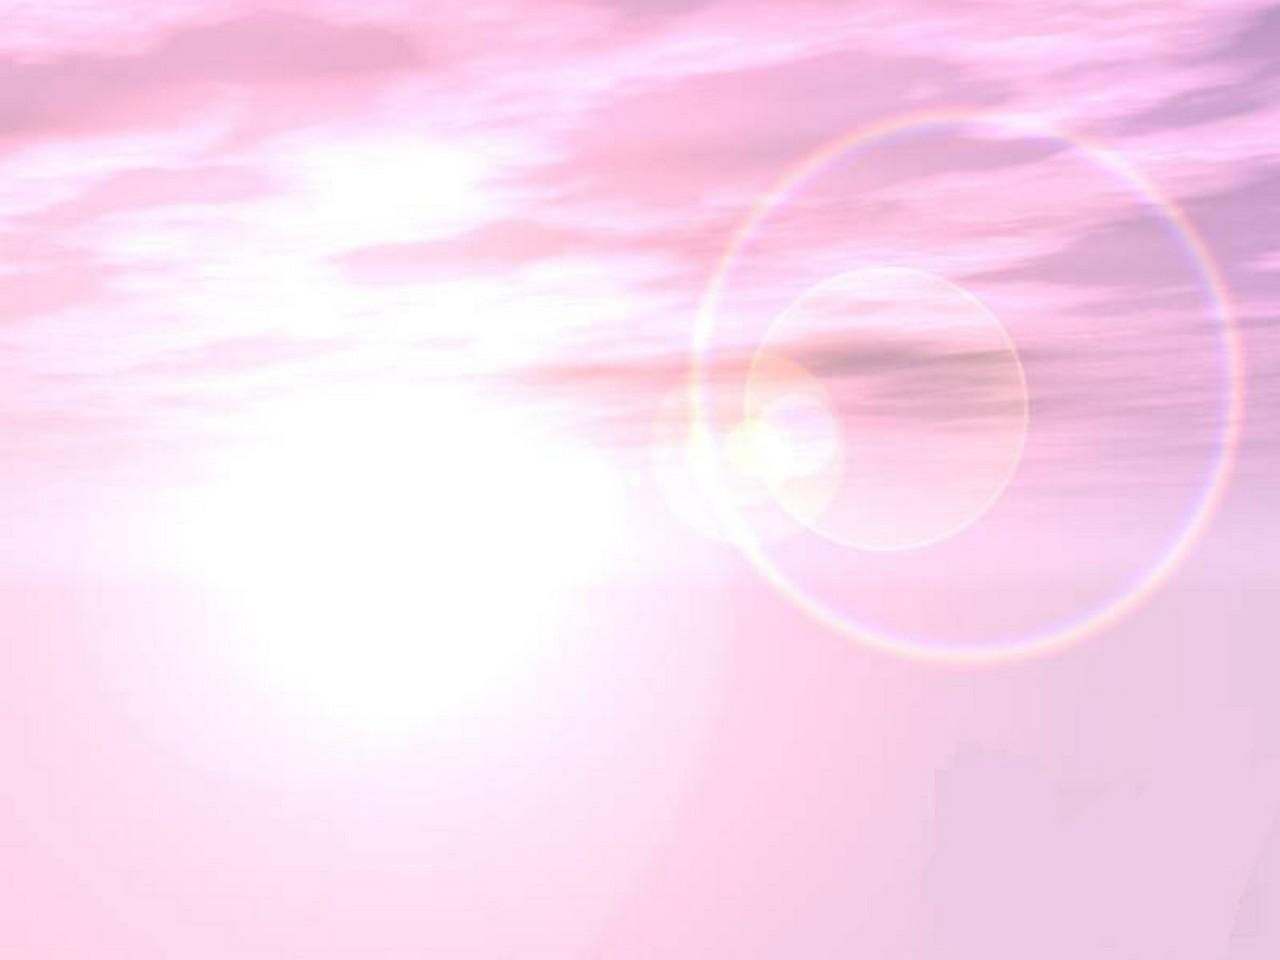 Light pink Wallpaper. More Free PC Wallpaper for Your Desktop Backgrounds